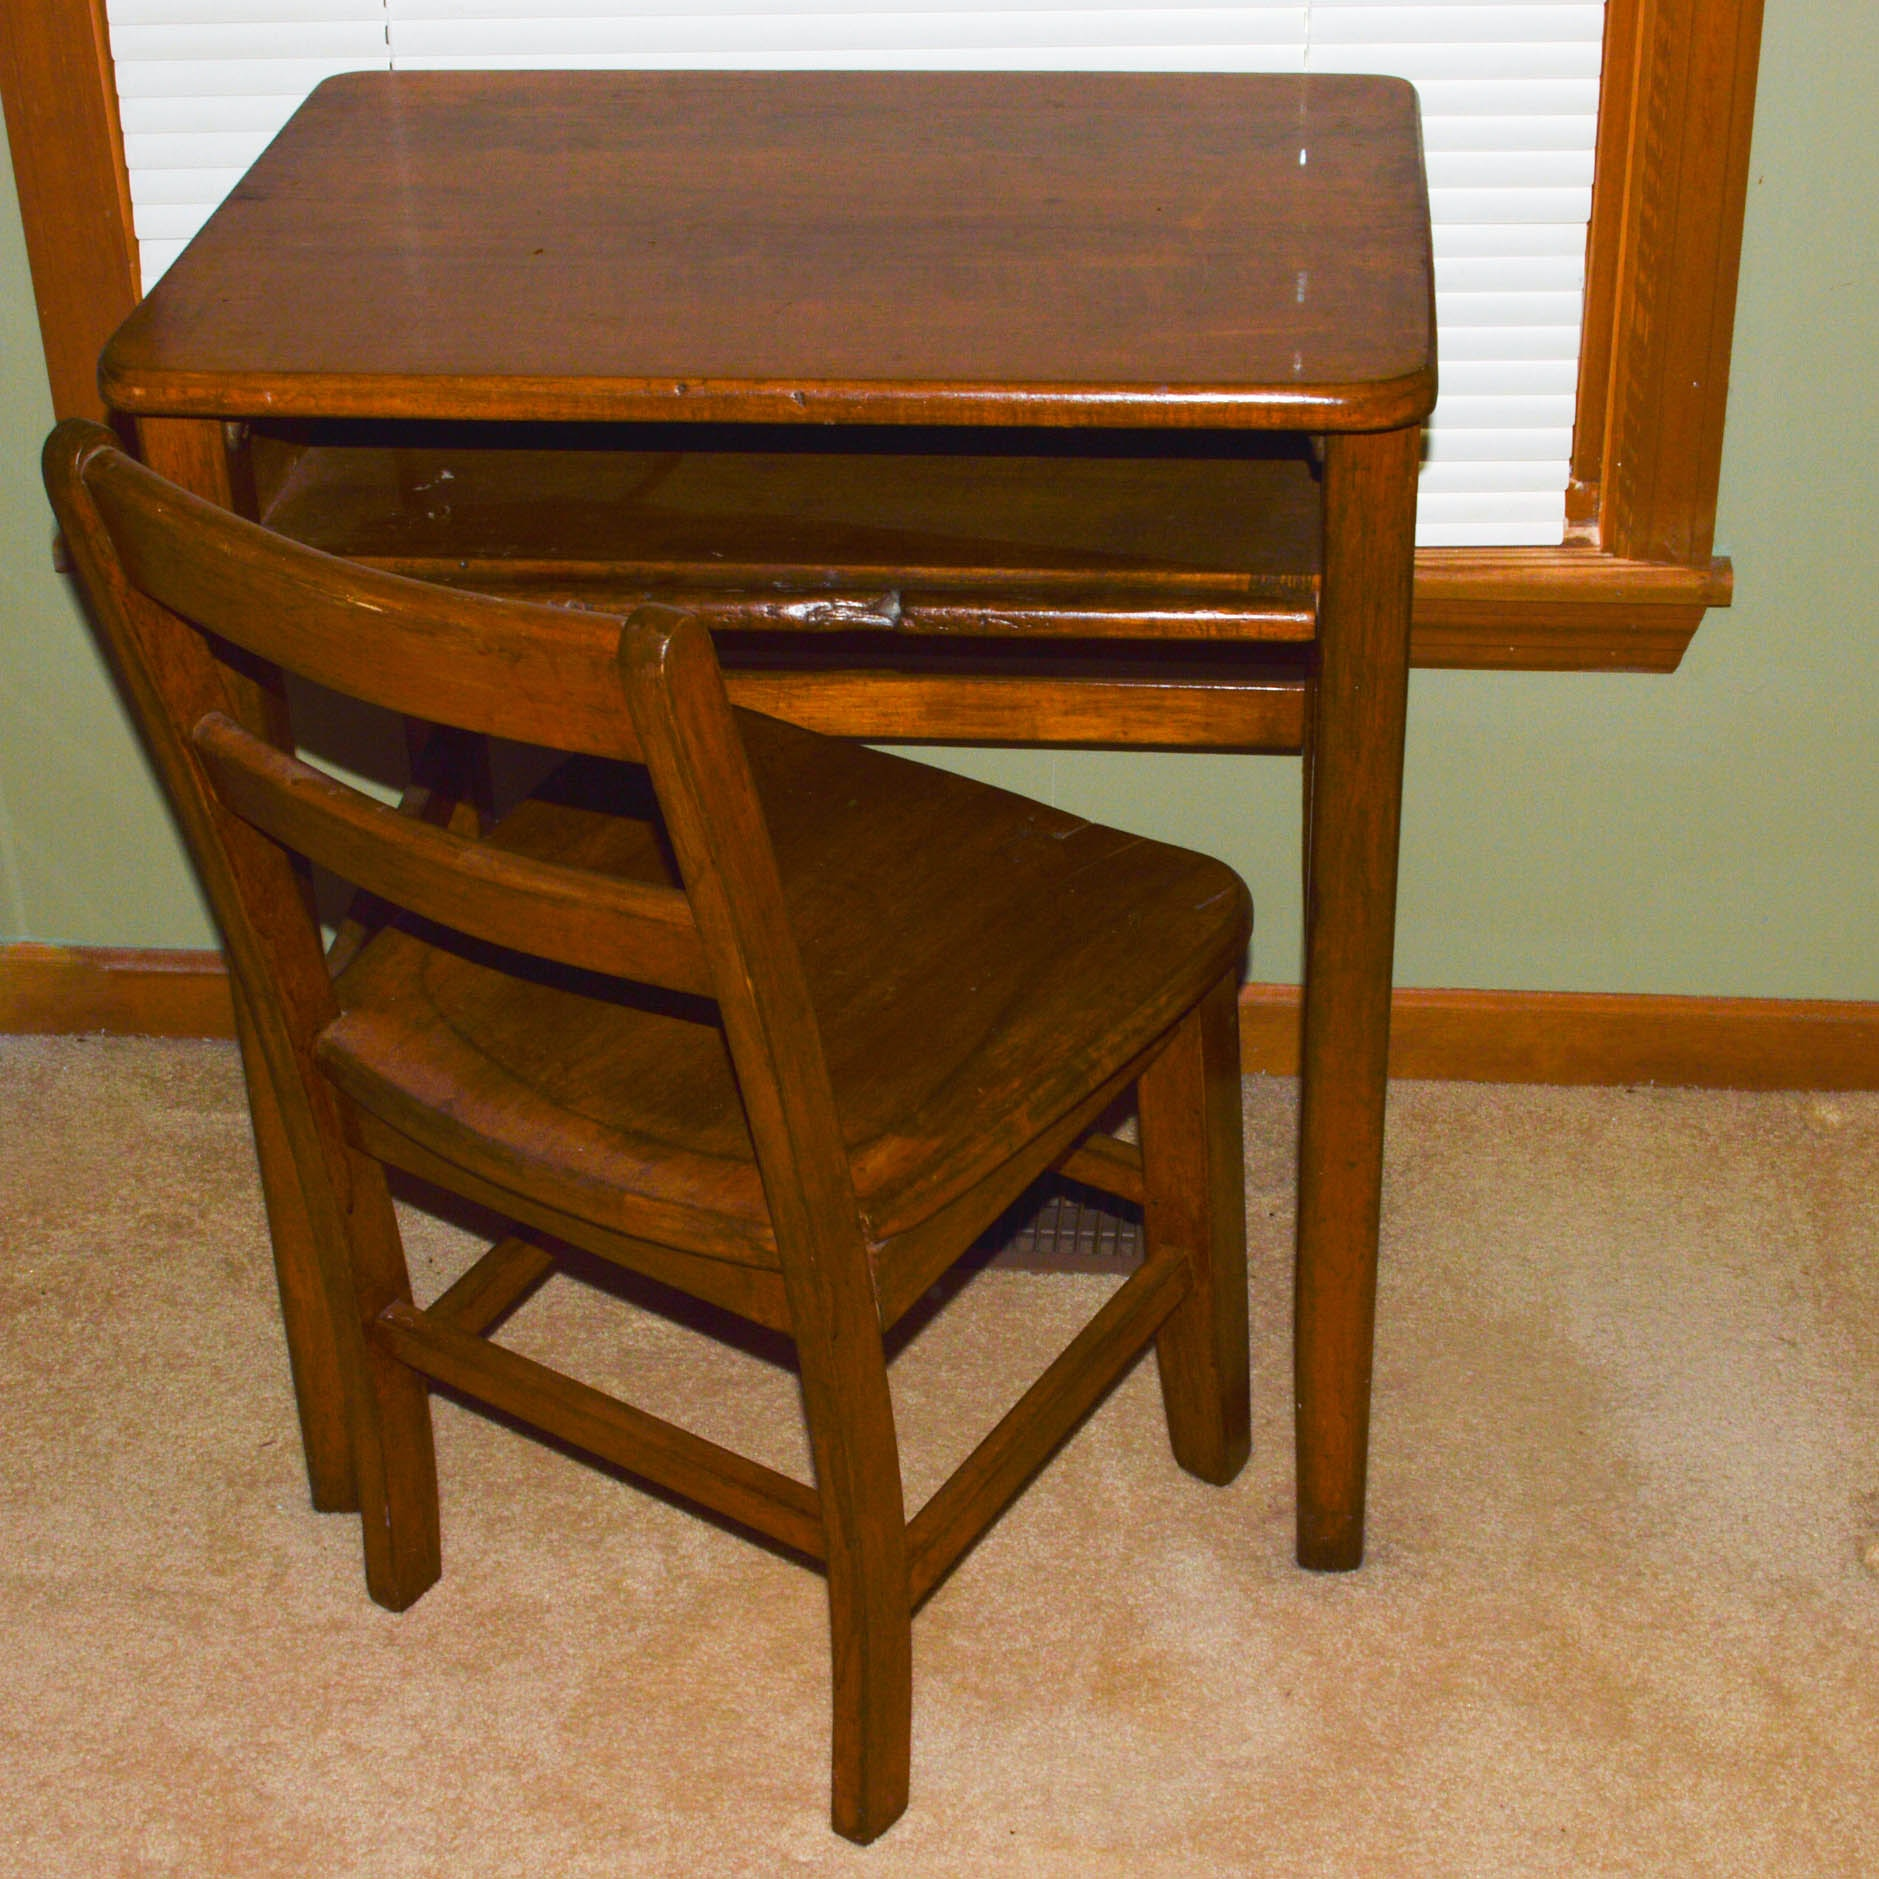 Vintage Student Desk and Chair